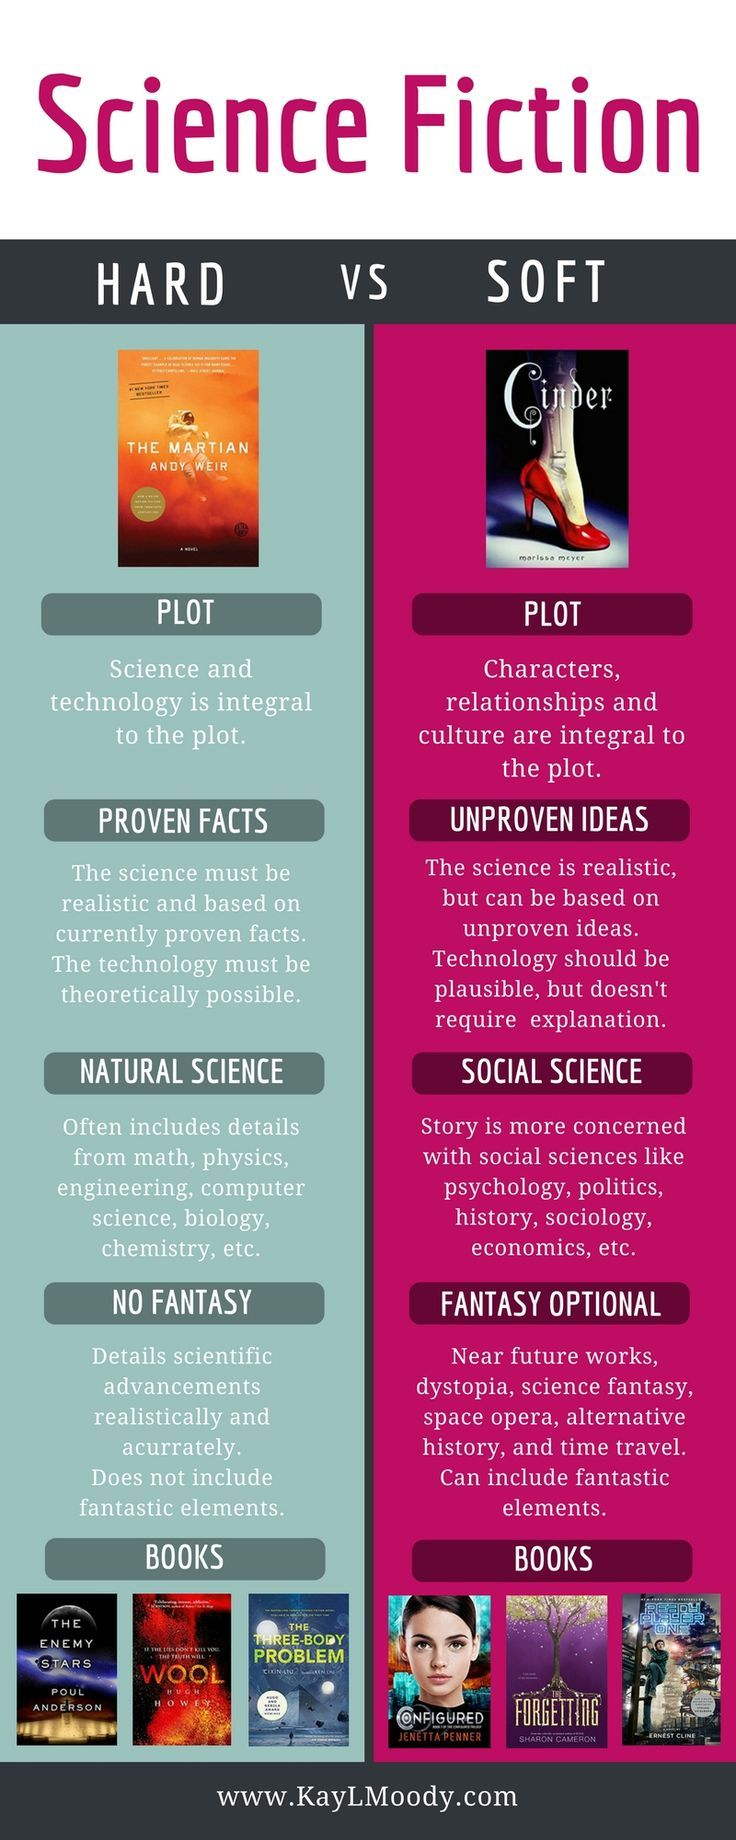 What is Soft Sci Fi and How Does it Differ From Hard Sci Fi?